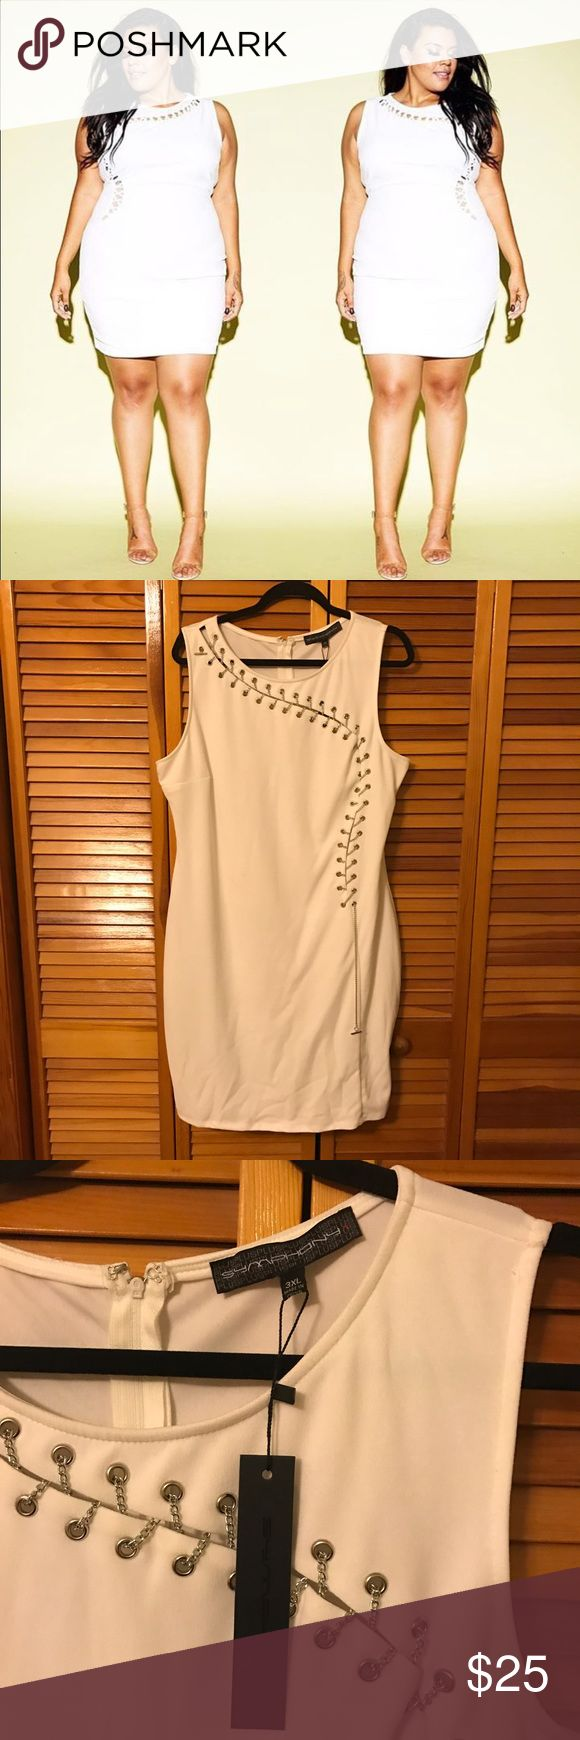 White chain bodycon dress Shop love Yourz white bodycon dress with chain Detail. Chain is silver. Never been worn. Tag attached. Size 3x shop love yourz Dresses Mini